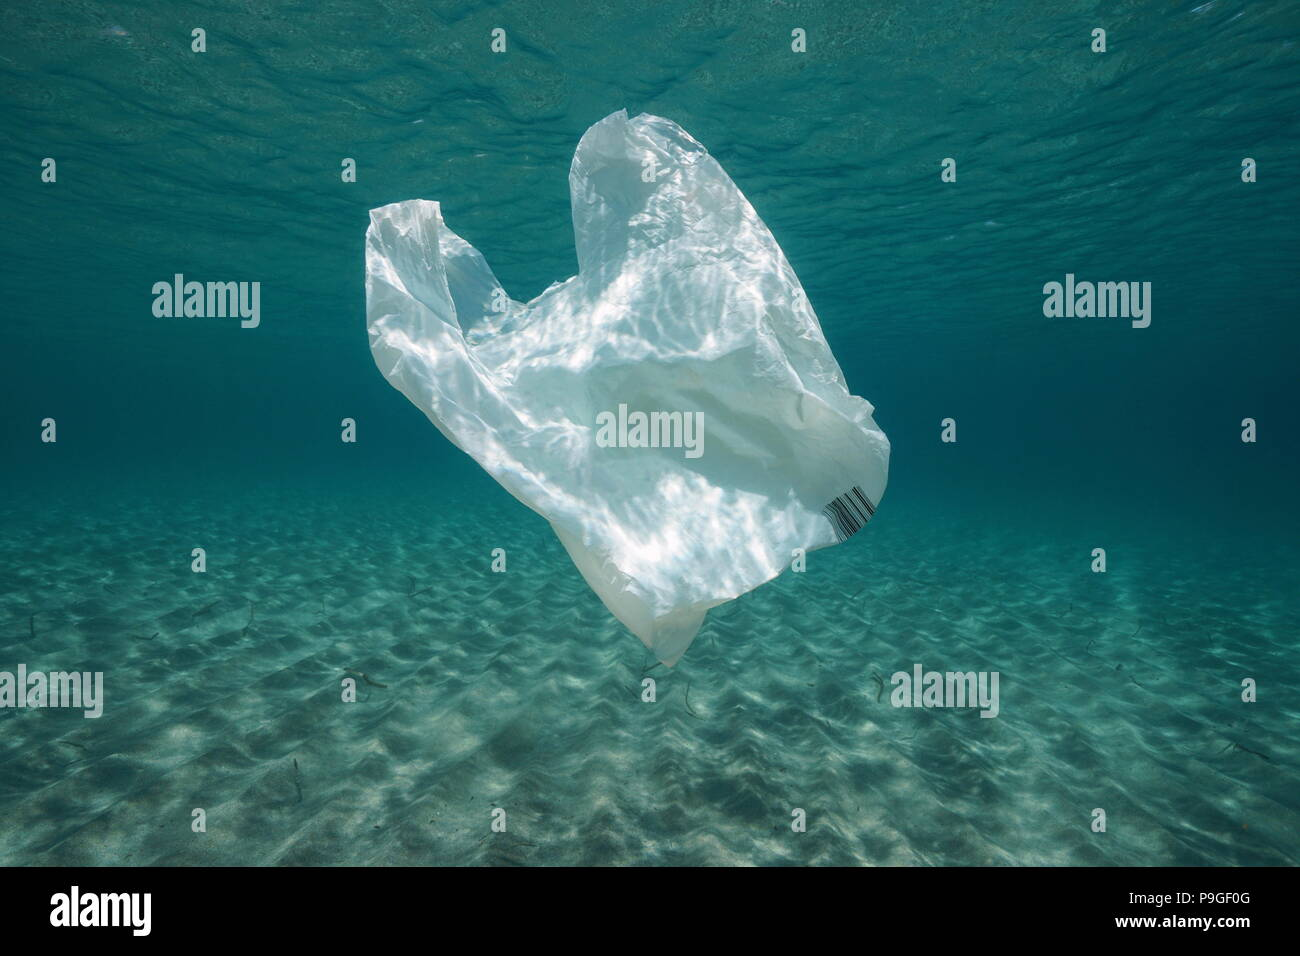 Plastic Waste In The Mediterranean Sea Stock Photos